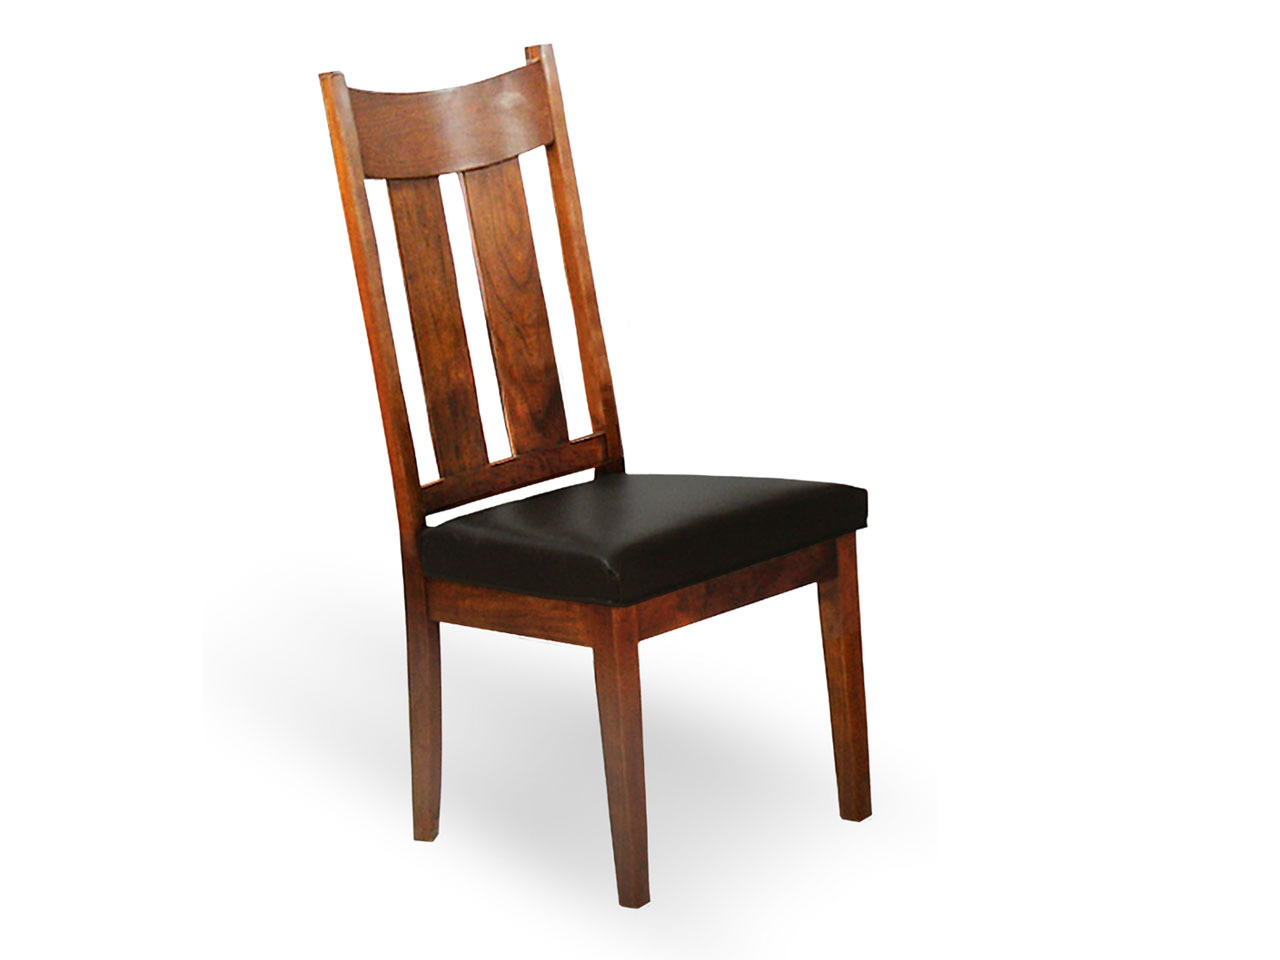 vintage oak dining chairs behind the chair promo codes meetinghouse 4500 meeting house